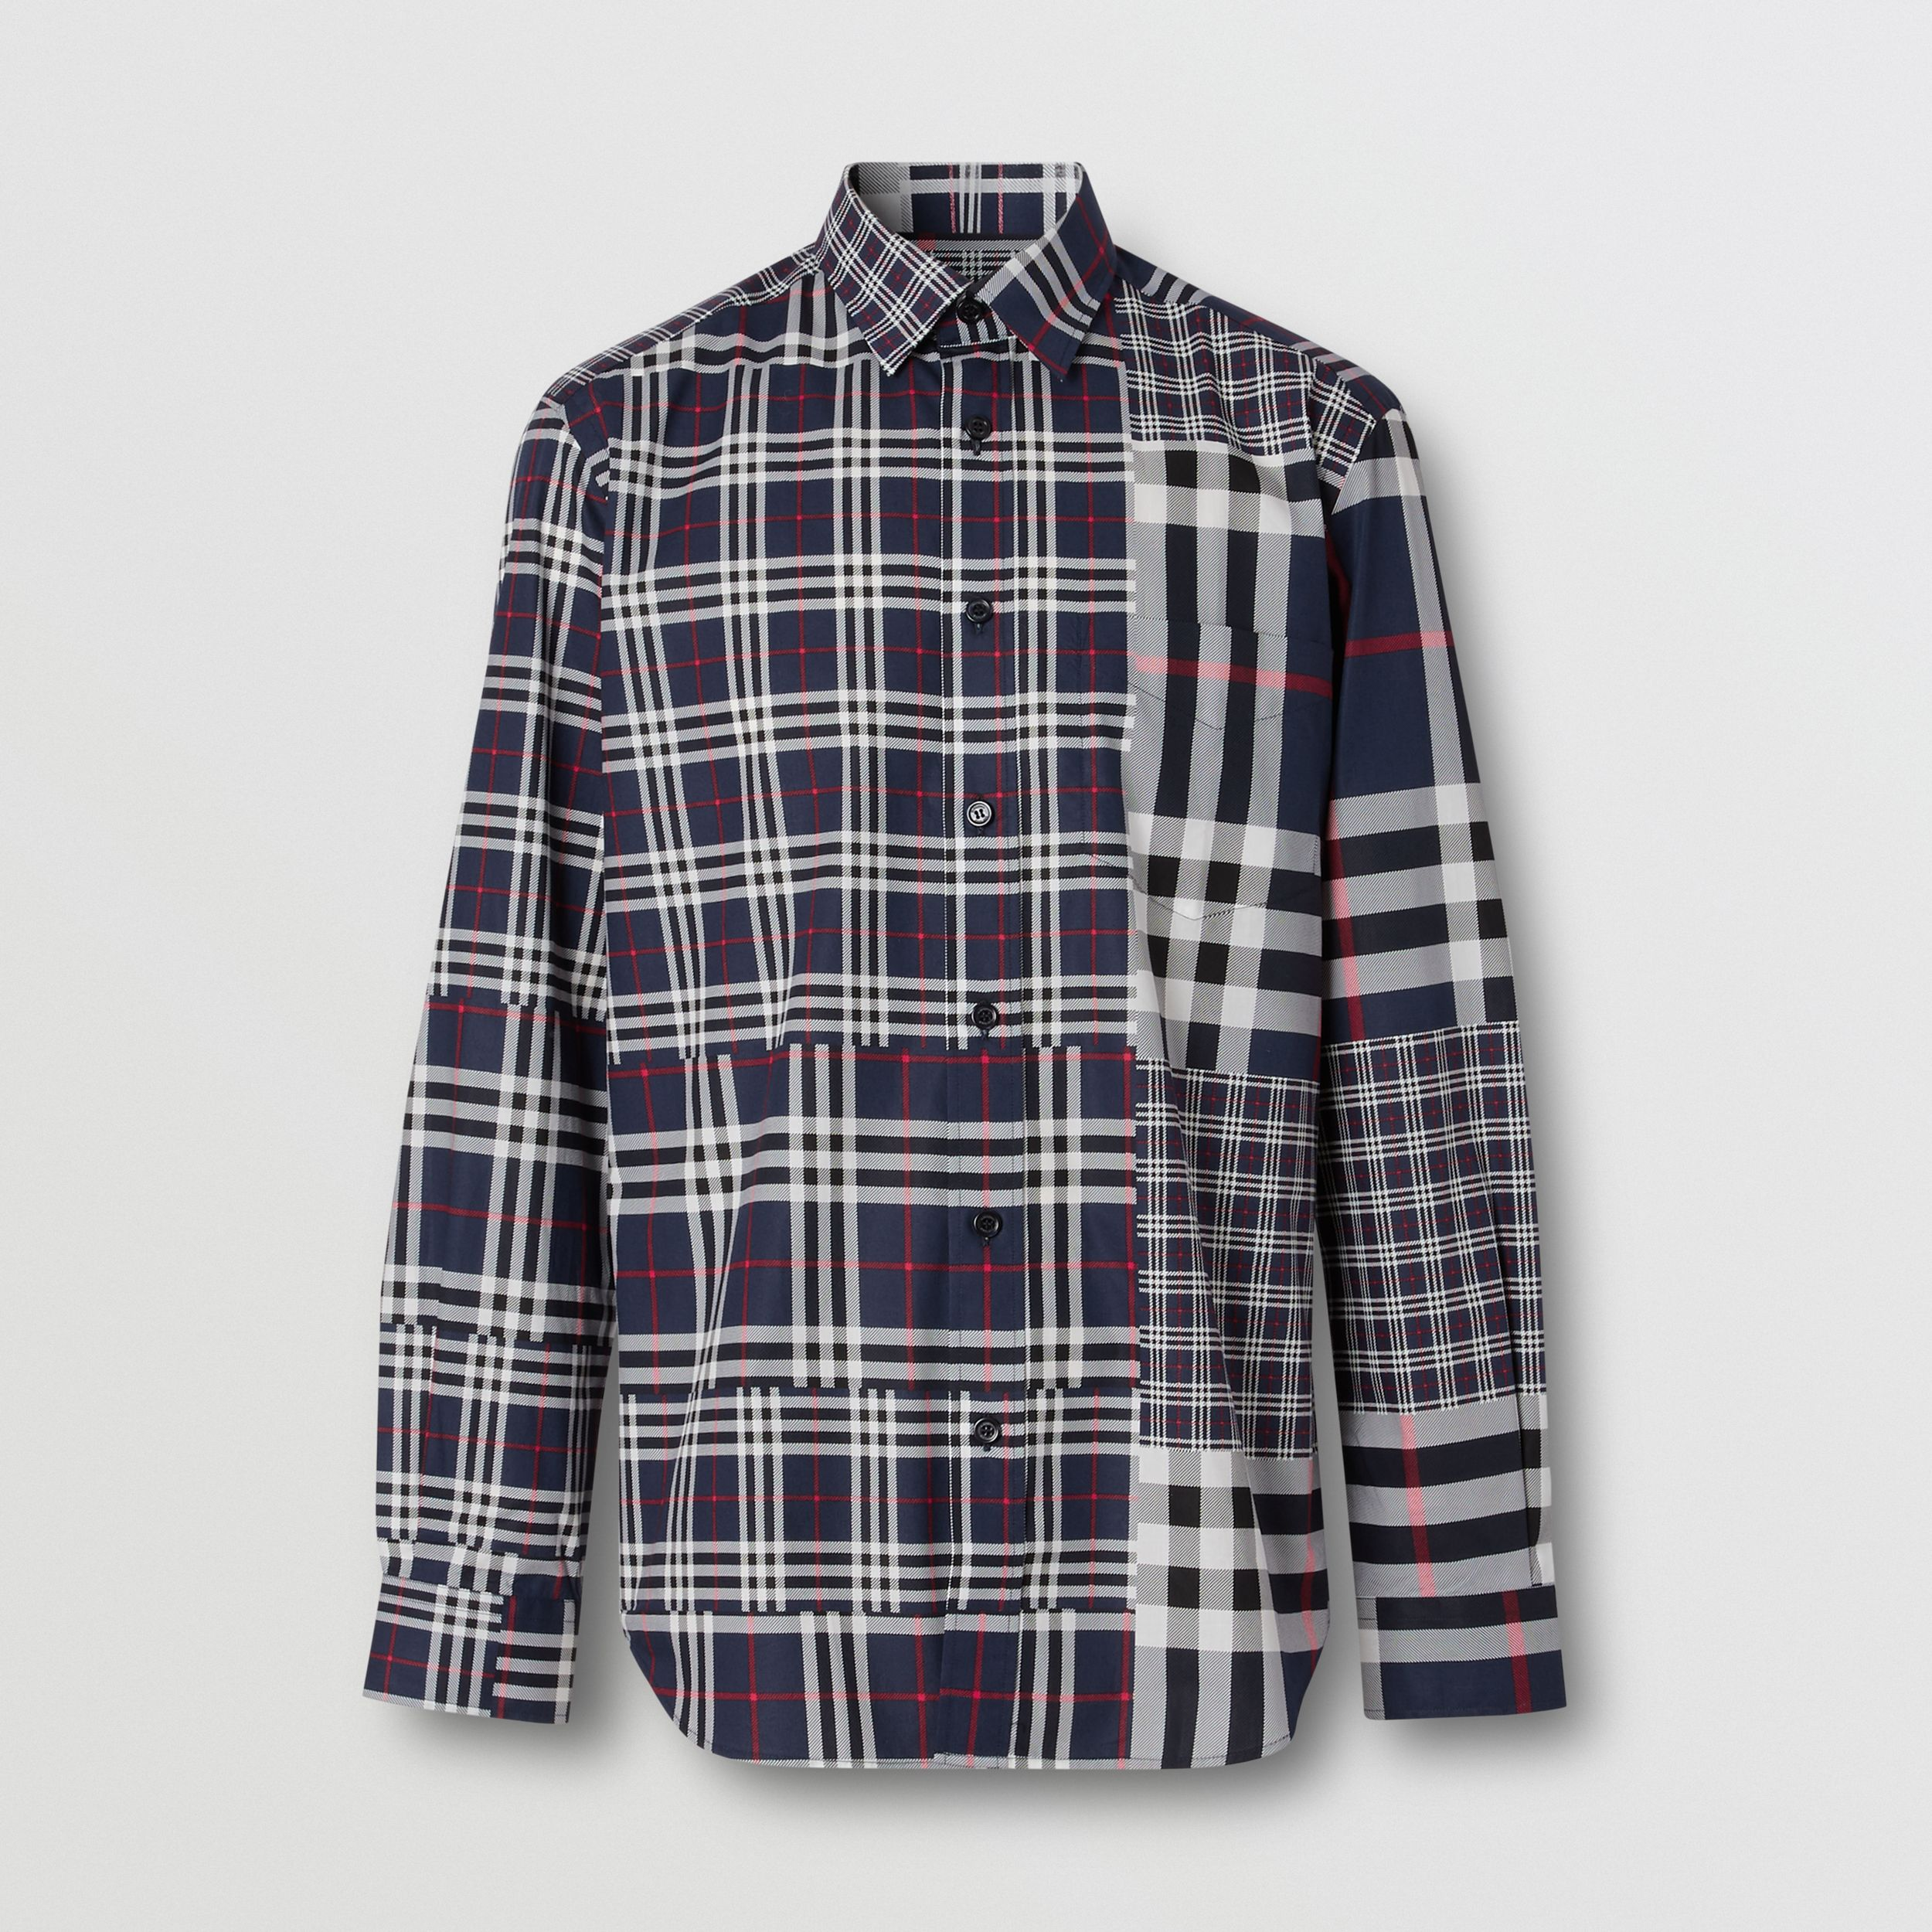 Classic Fit Patchwork Check Cotton Shirt in Navy - Men | Burberry - 4